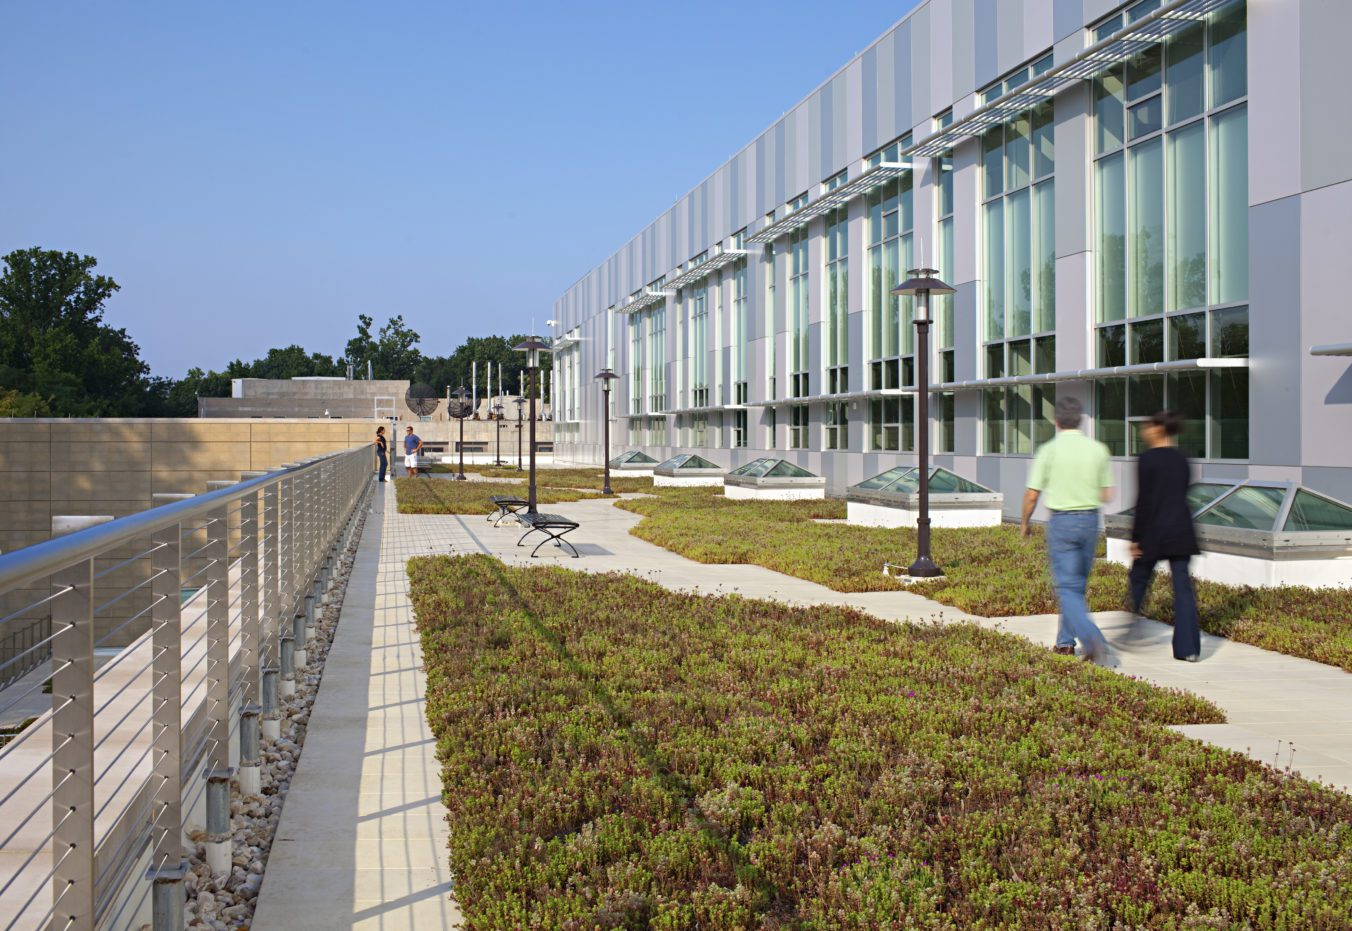 Morgan State University Center for Built Environment and Infrastructure Studies Greenroof